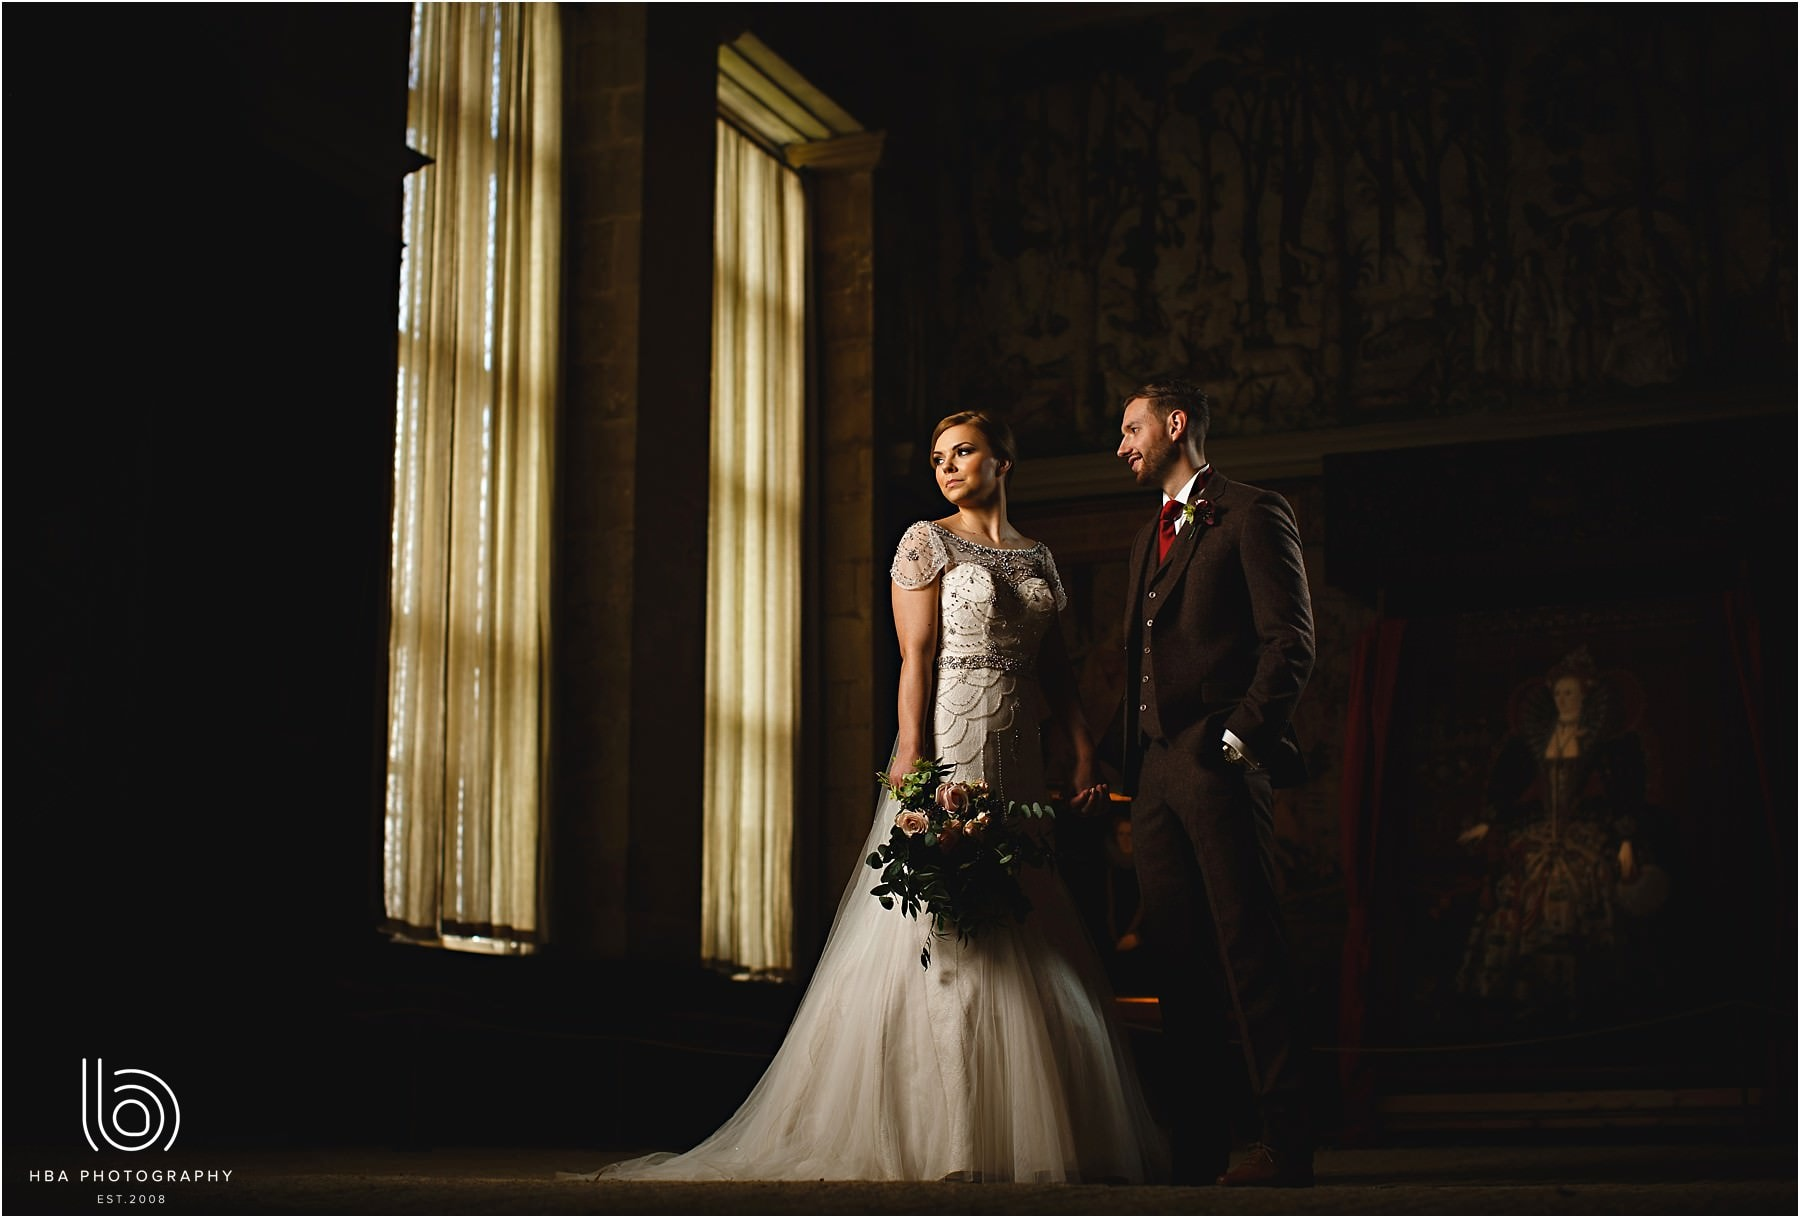 The bride and groom stood together in a dark room